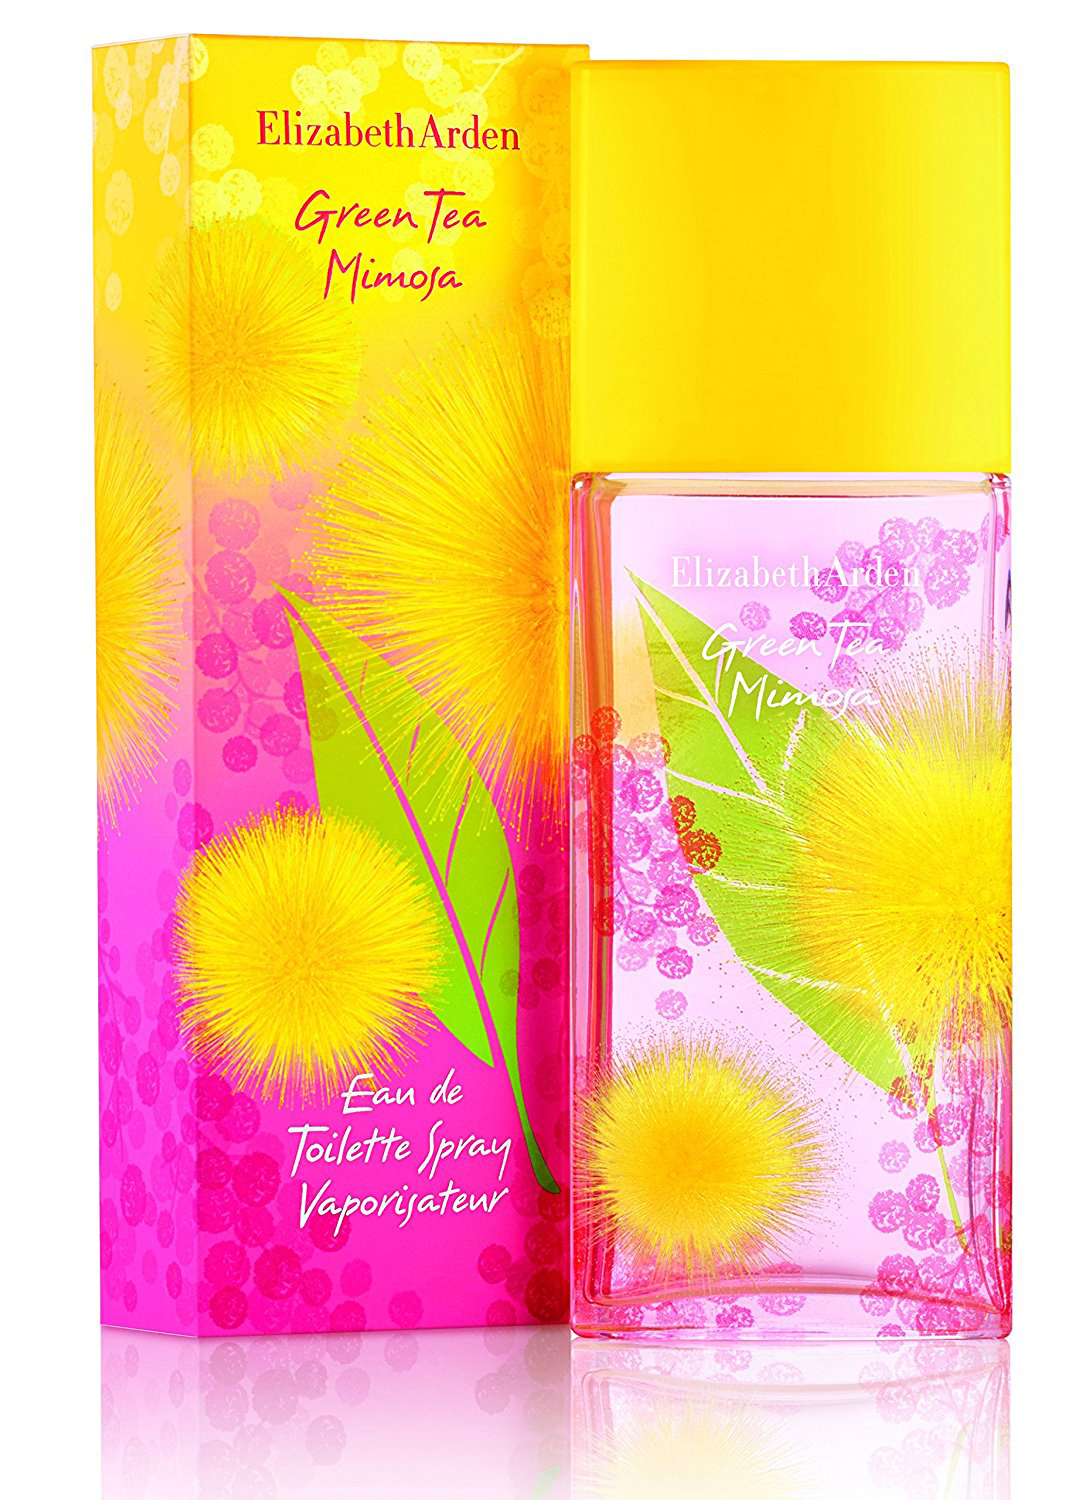 Туалетная вода Elizabeth Arden Green Tea Mimosa 100ml фото